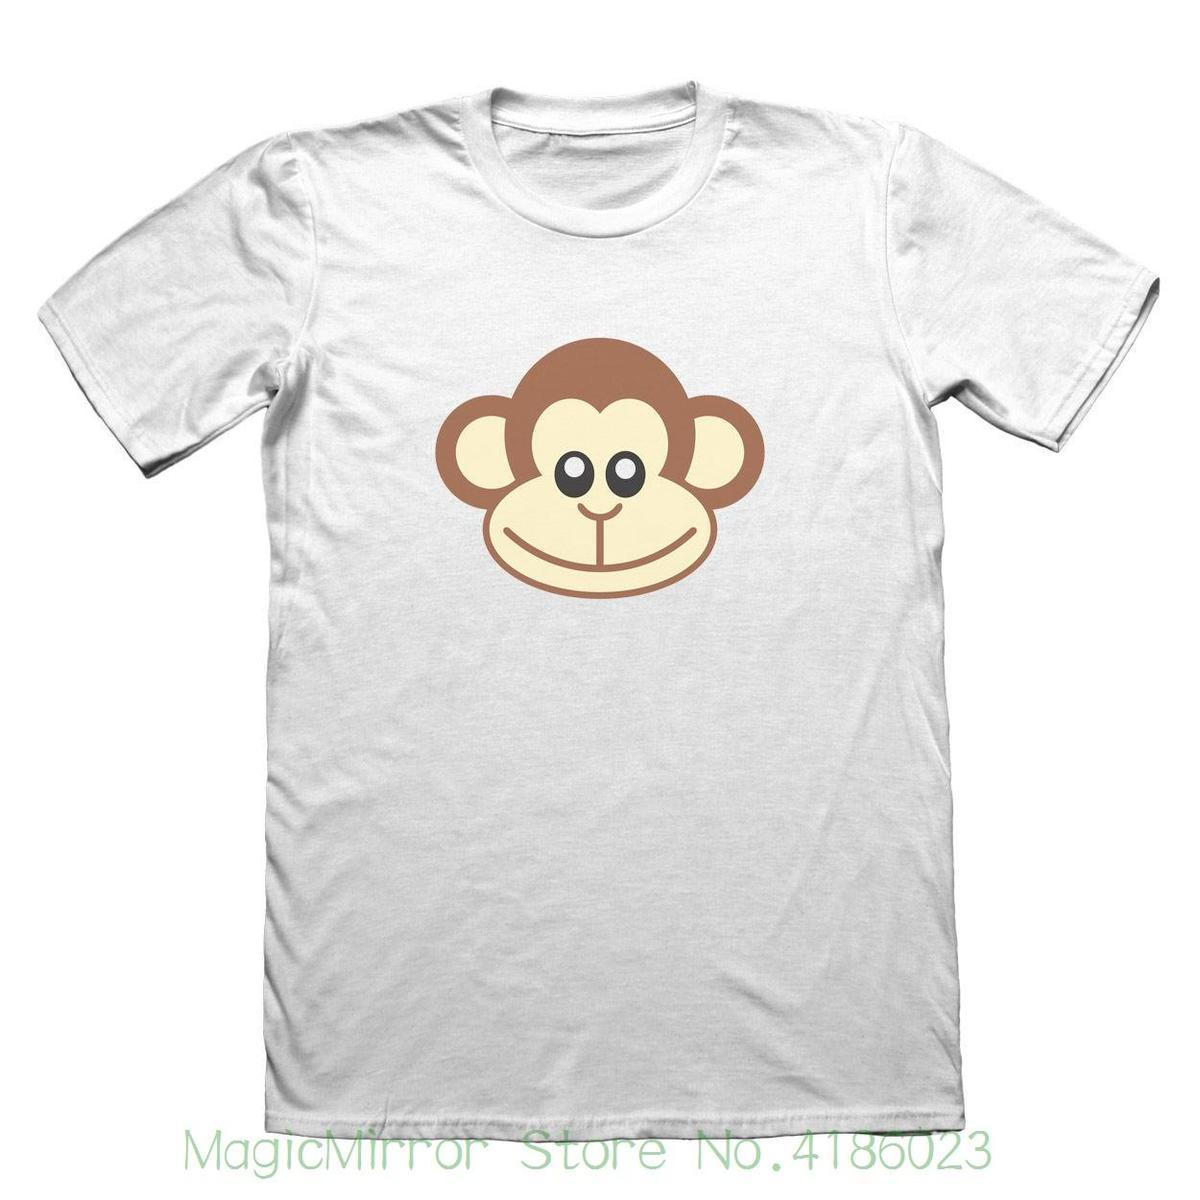 CATCHES THE EYE MONKEY BUSINESS ALL OVER PRINT T-SHIRT